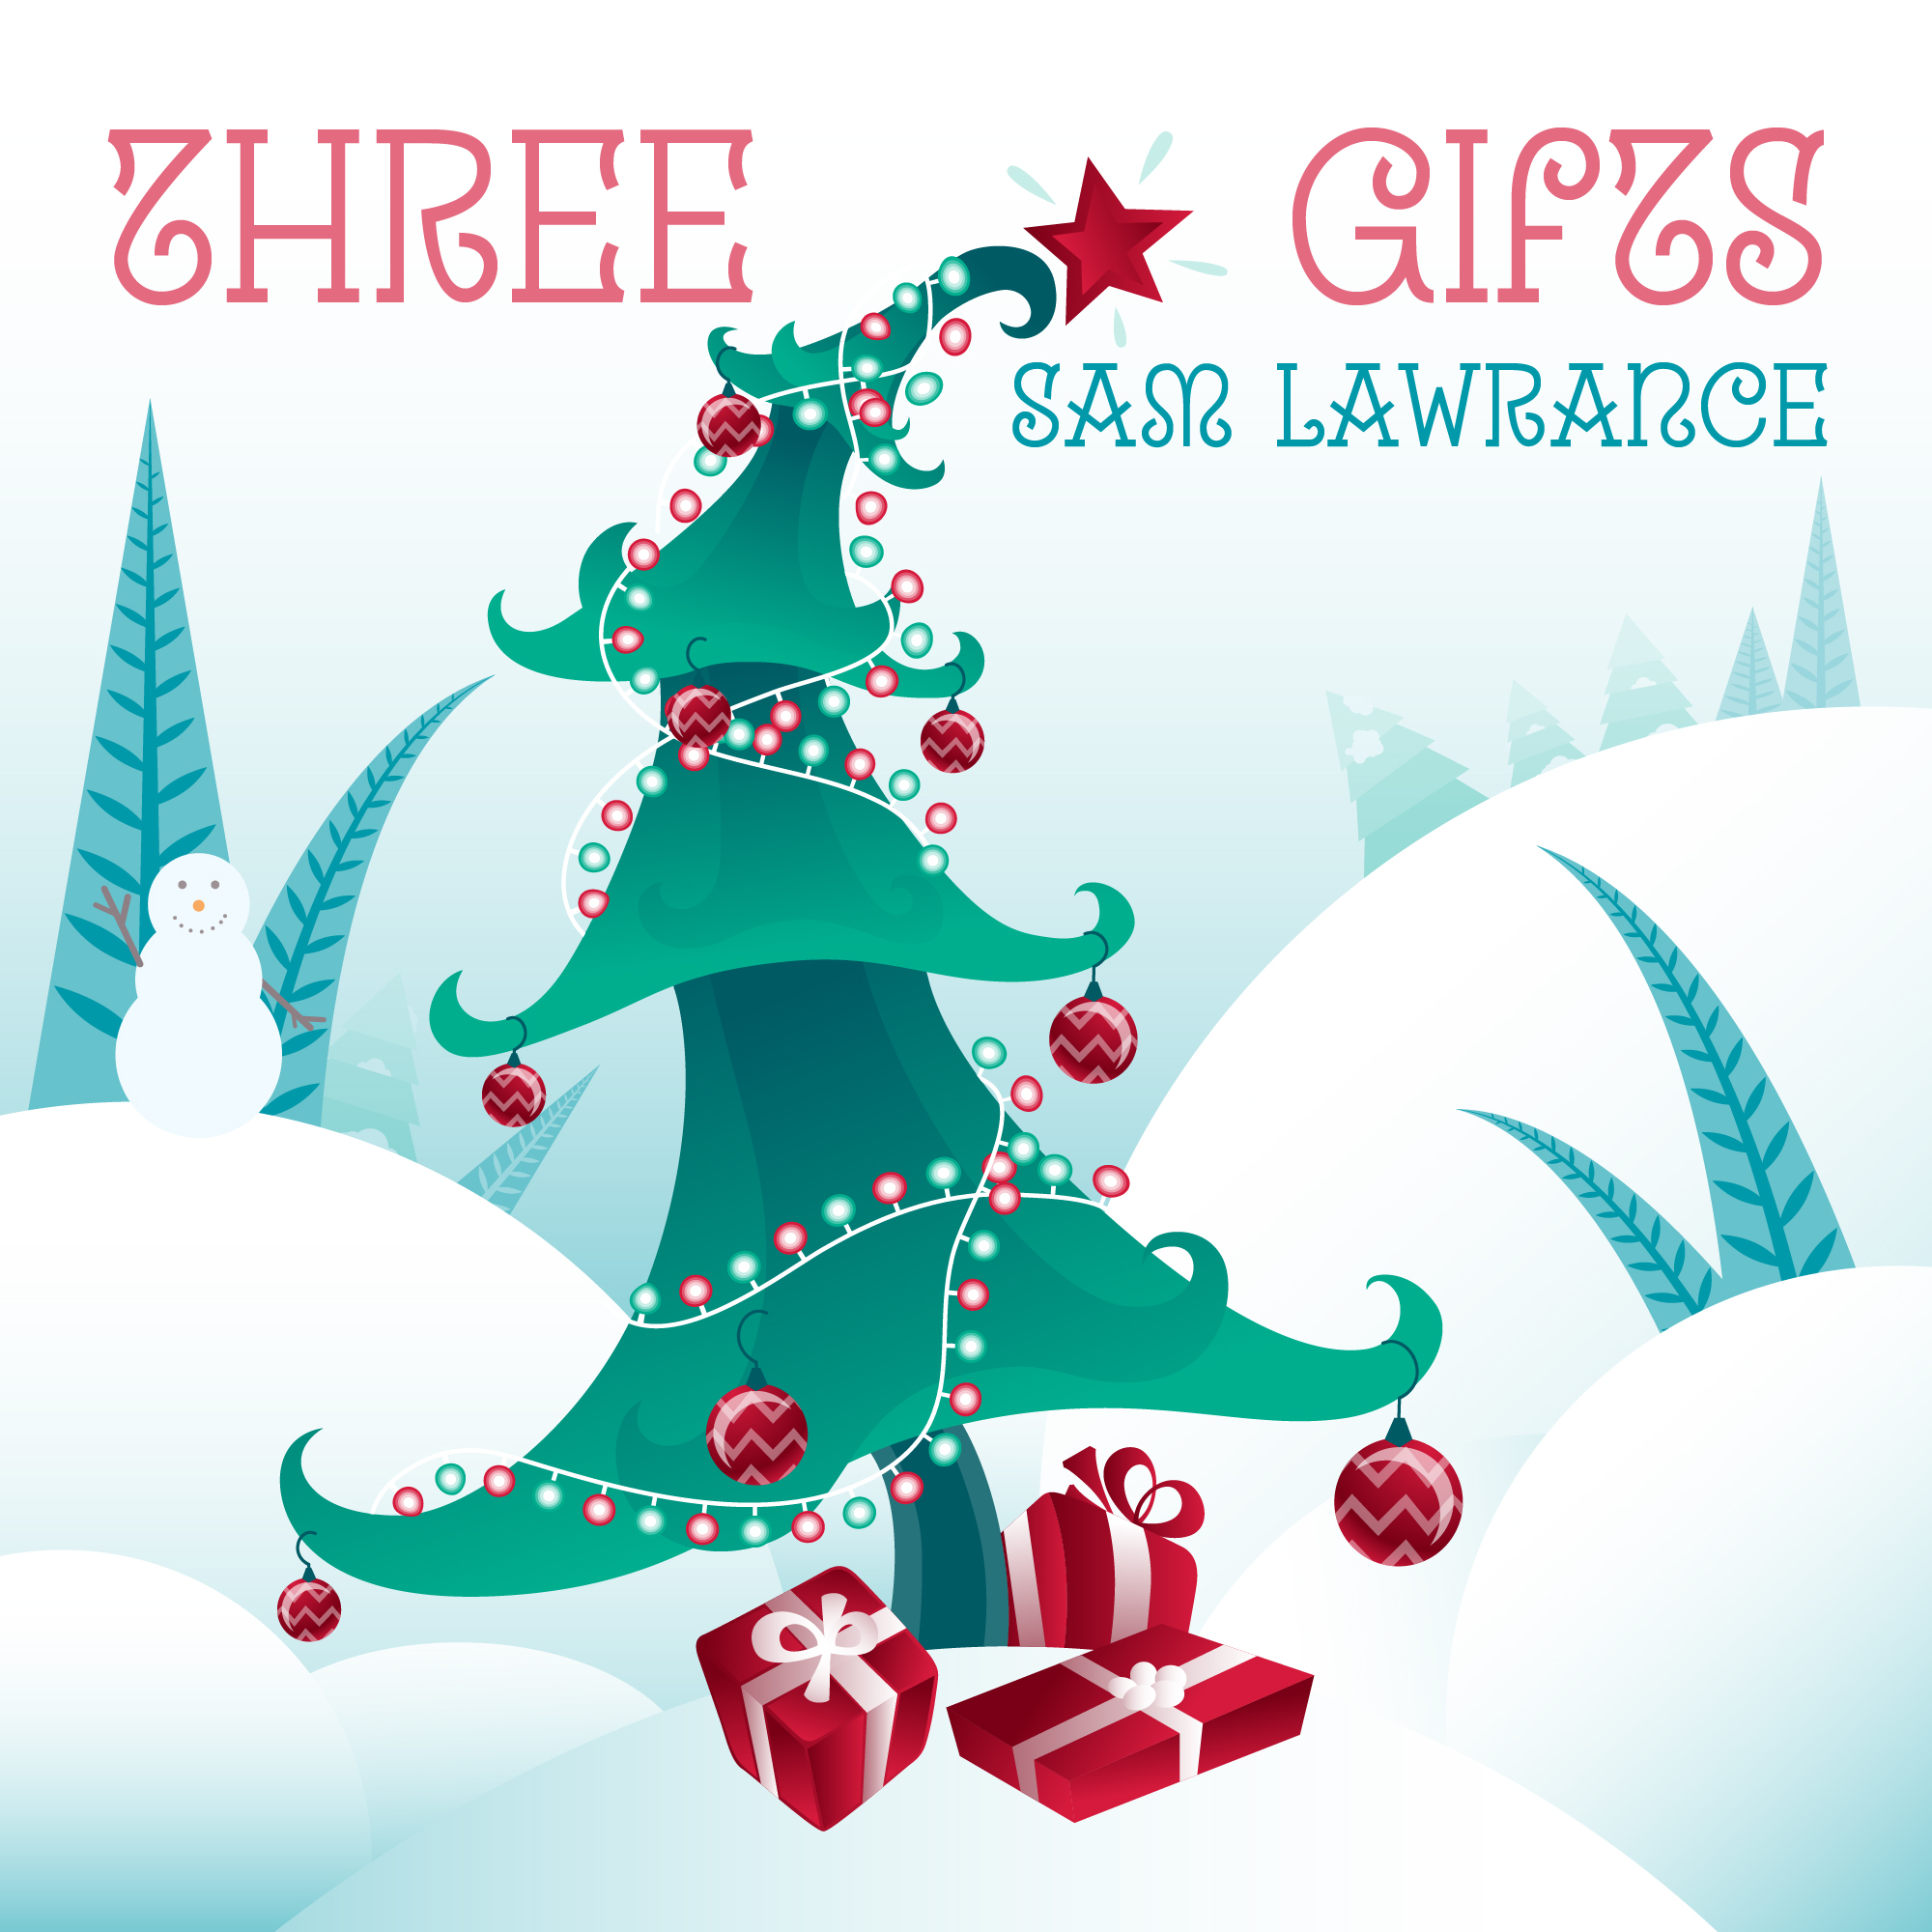 3 gifts by Sam Lawrance - song cover by Andrei Verner